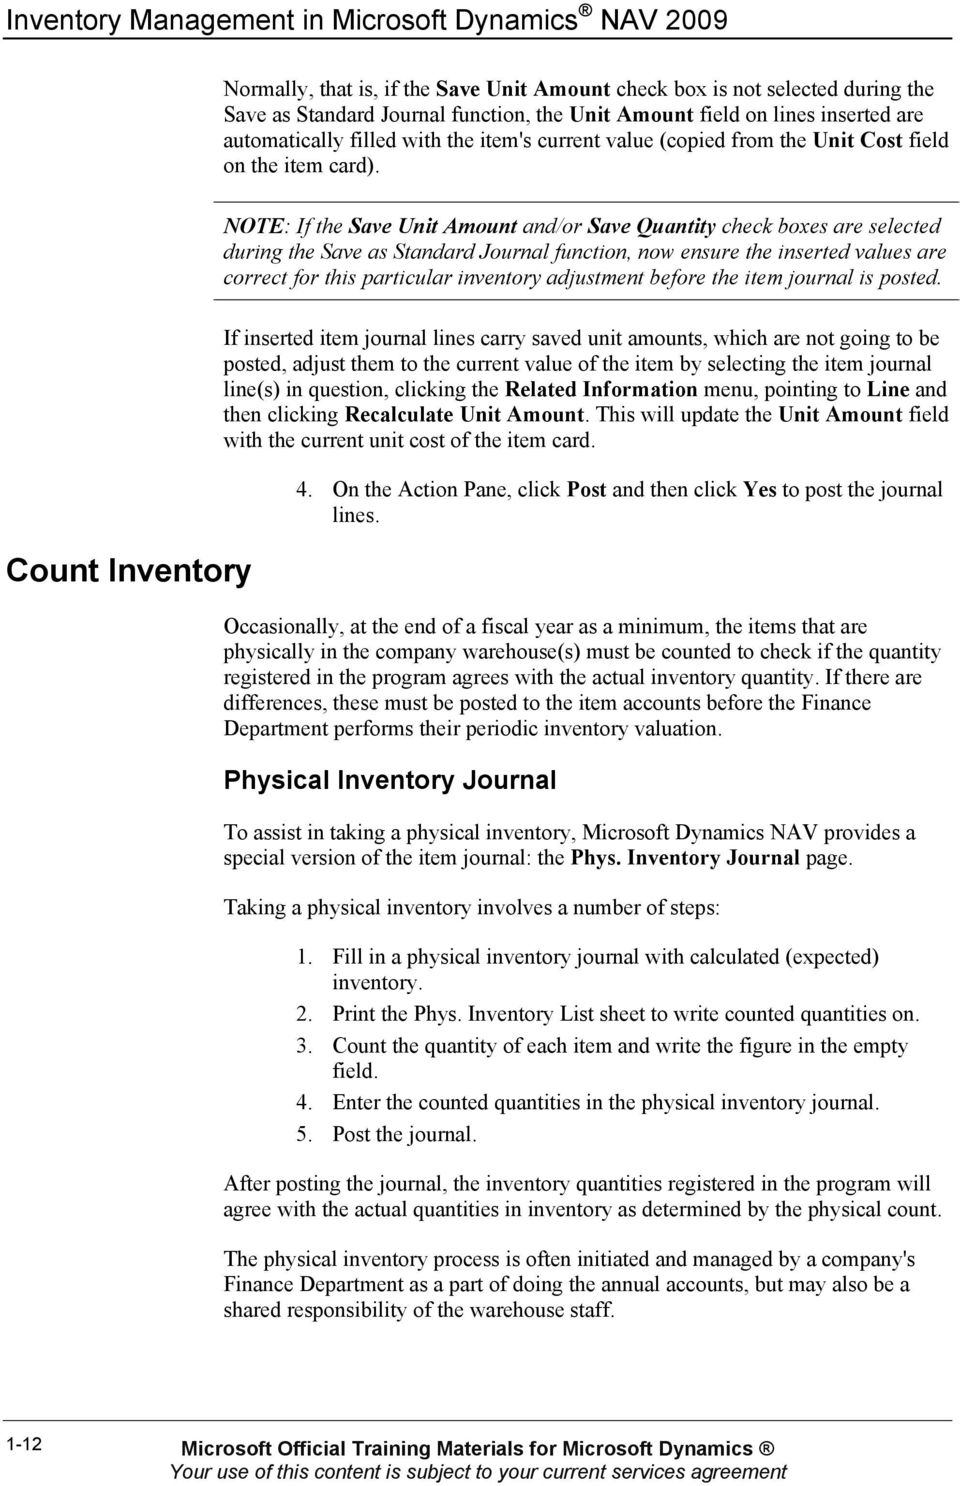 CHAPTER 1: INVENTORY CONTROL - PDF